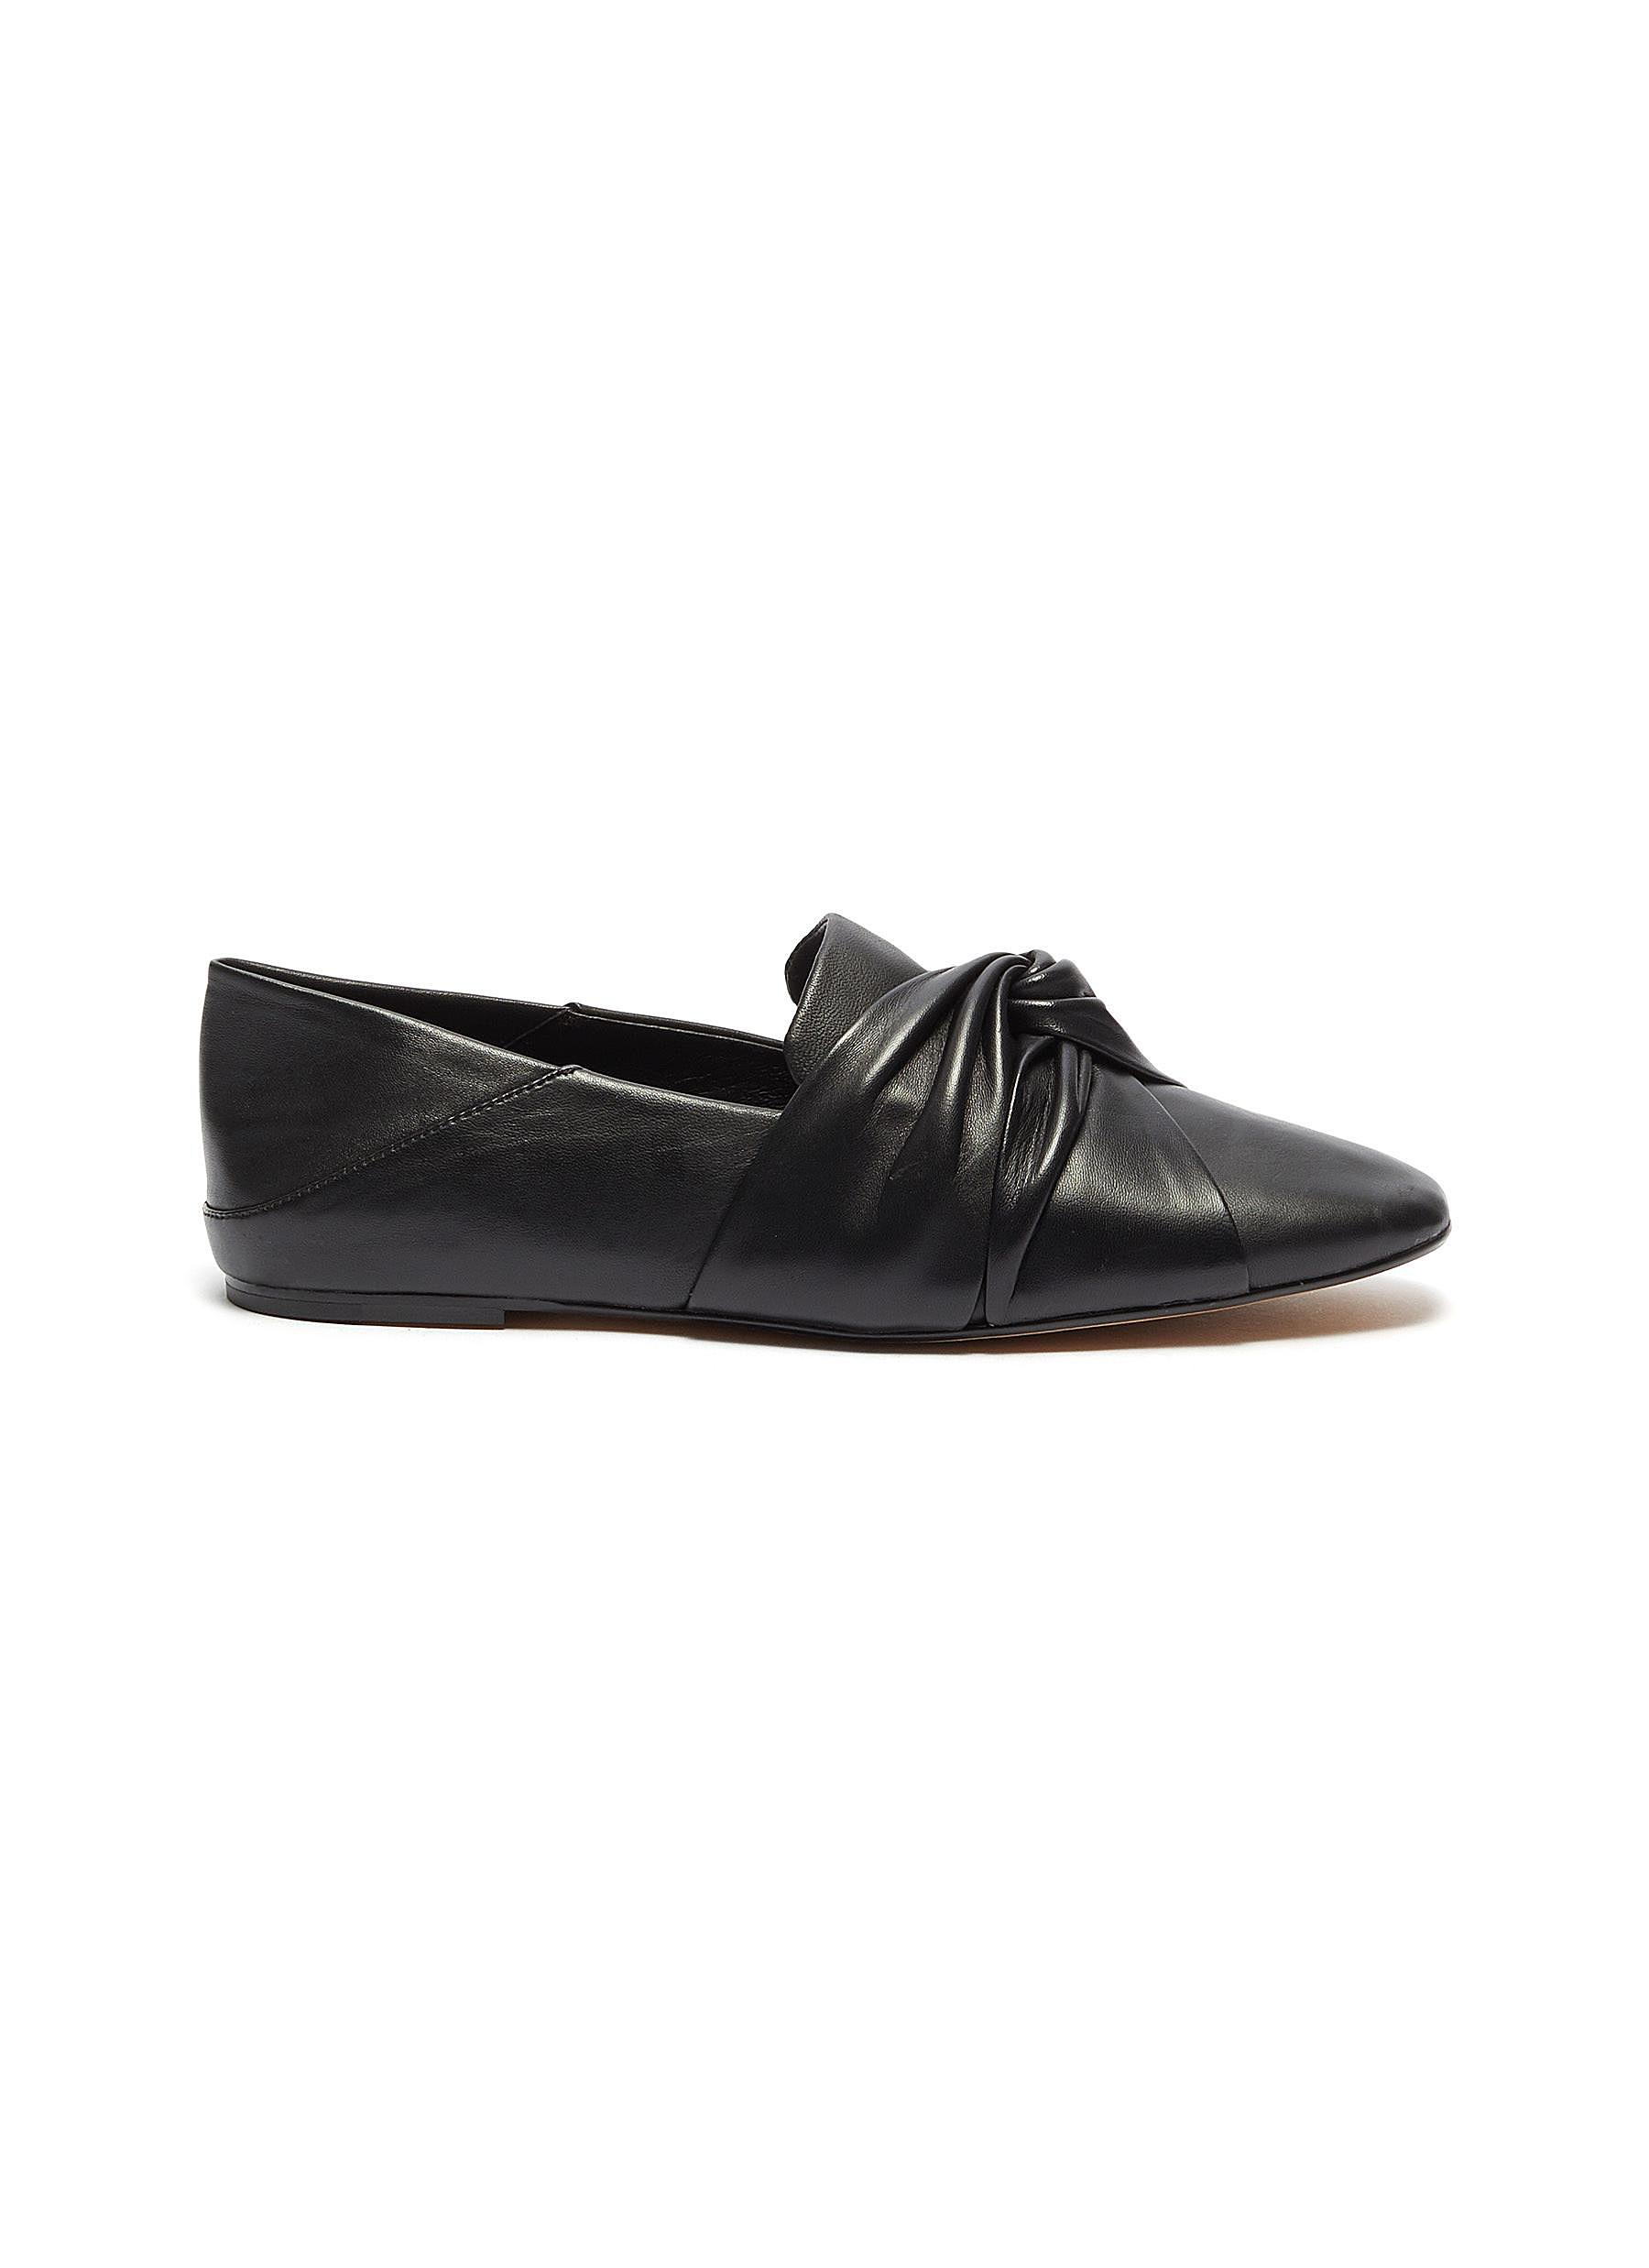 Haddie knotted leather step-in loafers by Vince